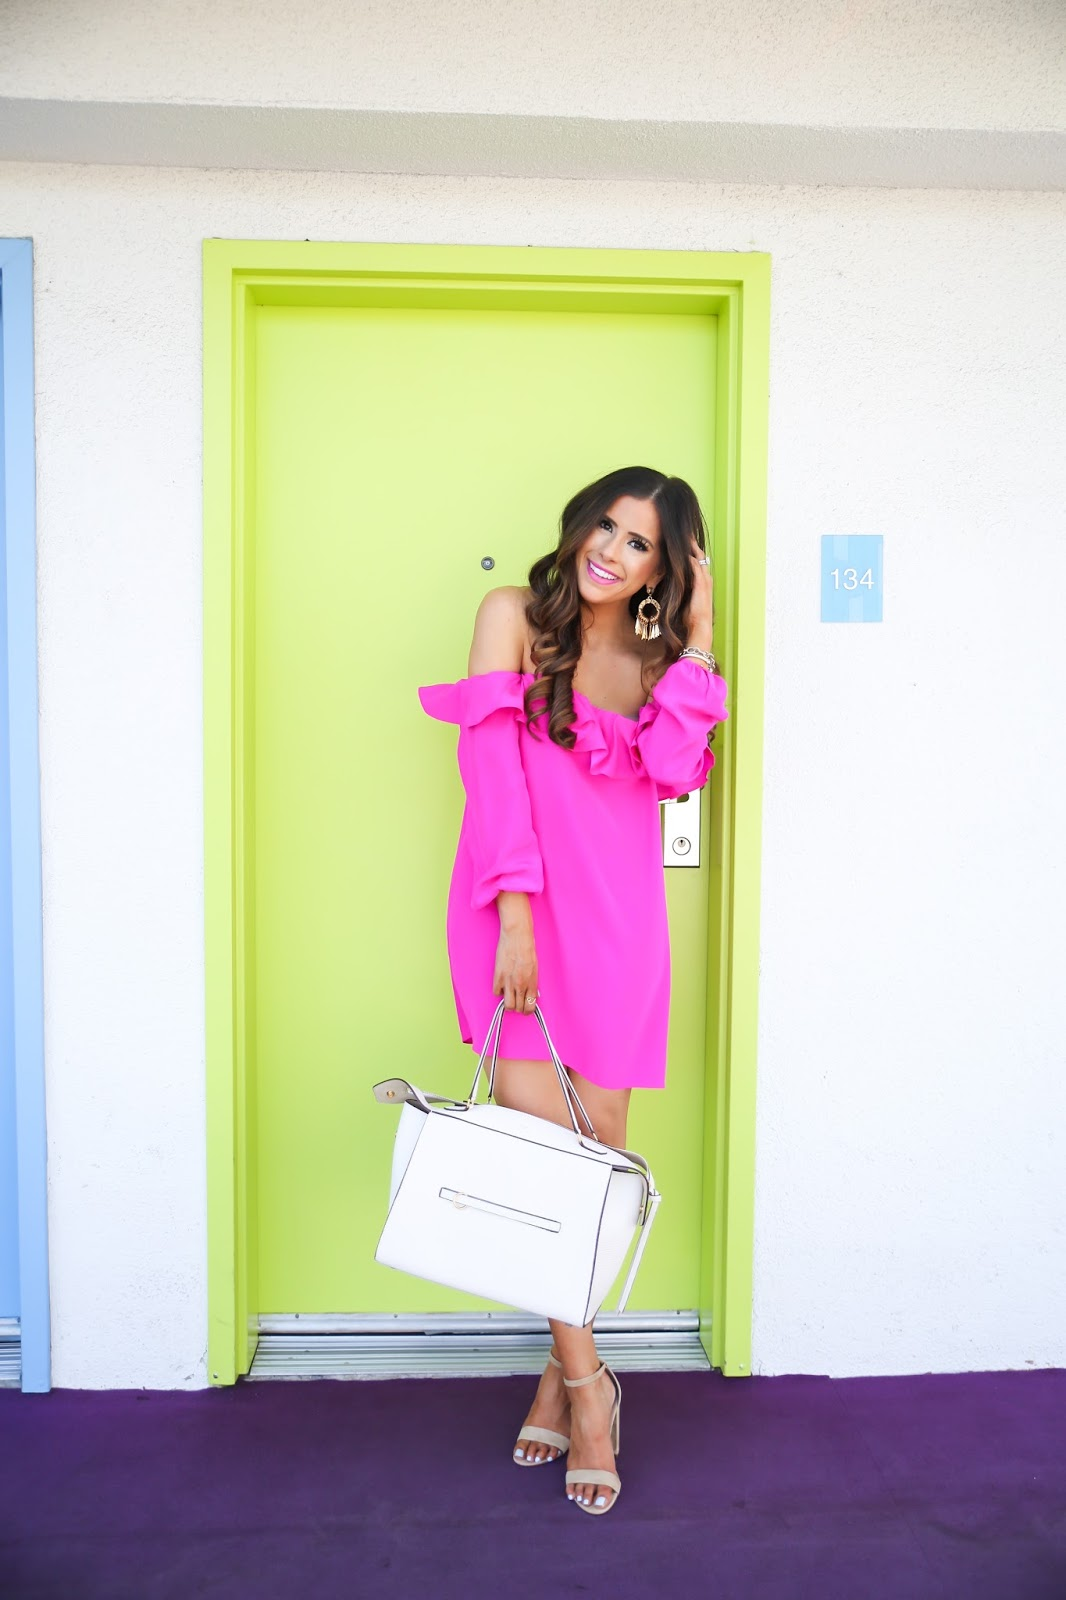 amanda uprichard dress joanna dress, amanda uprichard hot pink dress,steve madden carrsen sandal, spring fashion 2106, pinterest spring outfit ideas, easter dress ideas 2016, easter dresses 2016, easter dresses nordstrom 2016, pinterest hot pink dresses, pinterest vacation california outfits, david yurman chain link bracelet, brunette balayage hair, medium long layers haircut, medium haircut brunette balayage, how to curl hair with curling iron, hot pink dresses for spring, nordstorm pink dresses, emily gemma, celine ring bag white, elizabeth cole fringe earrings, the sweetest thing, the saguaro palm springs,